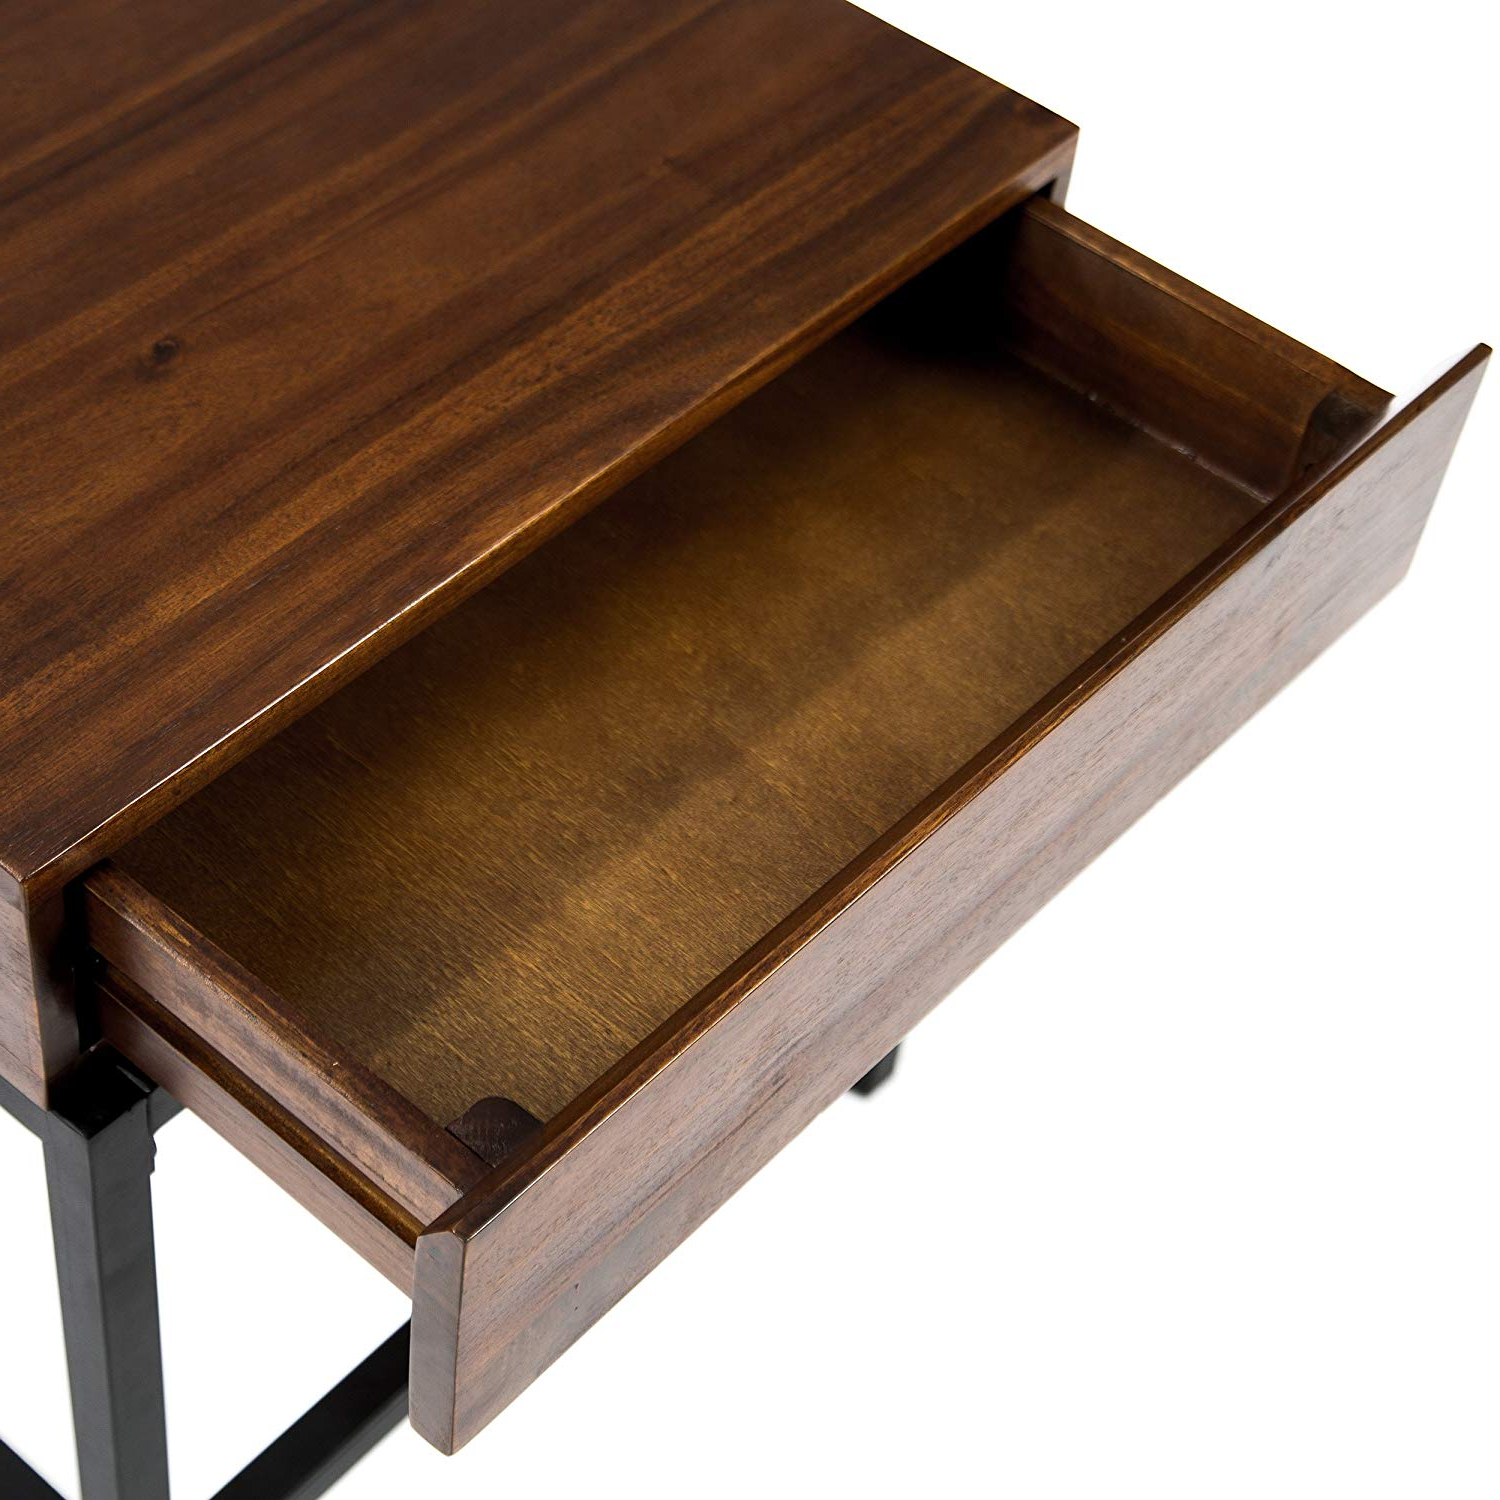 Acacia Wood Medley Medium Dining Tables With Metal Base With Famous Cheap Acacia Wood Price, Find Acacia Wood Price Deals On (View 19 of 30)